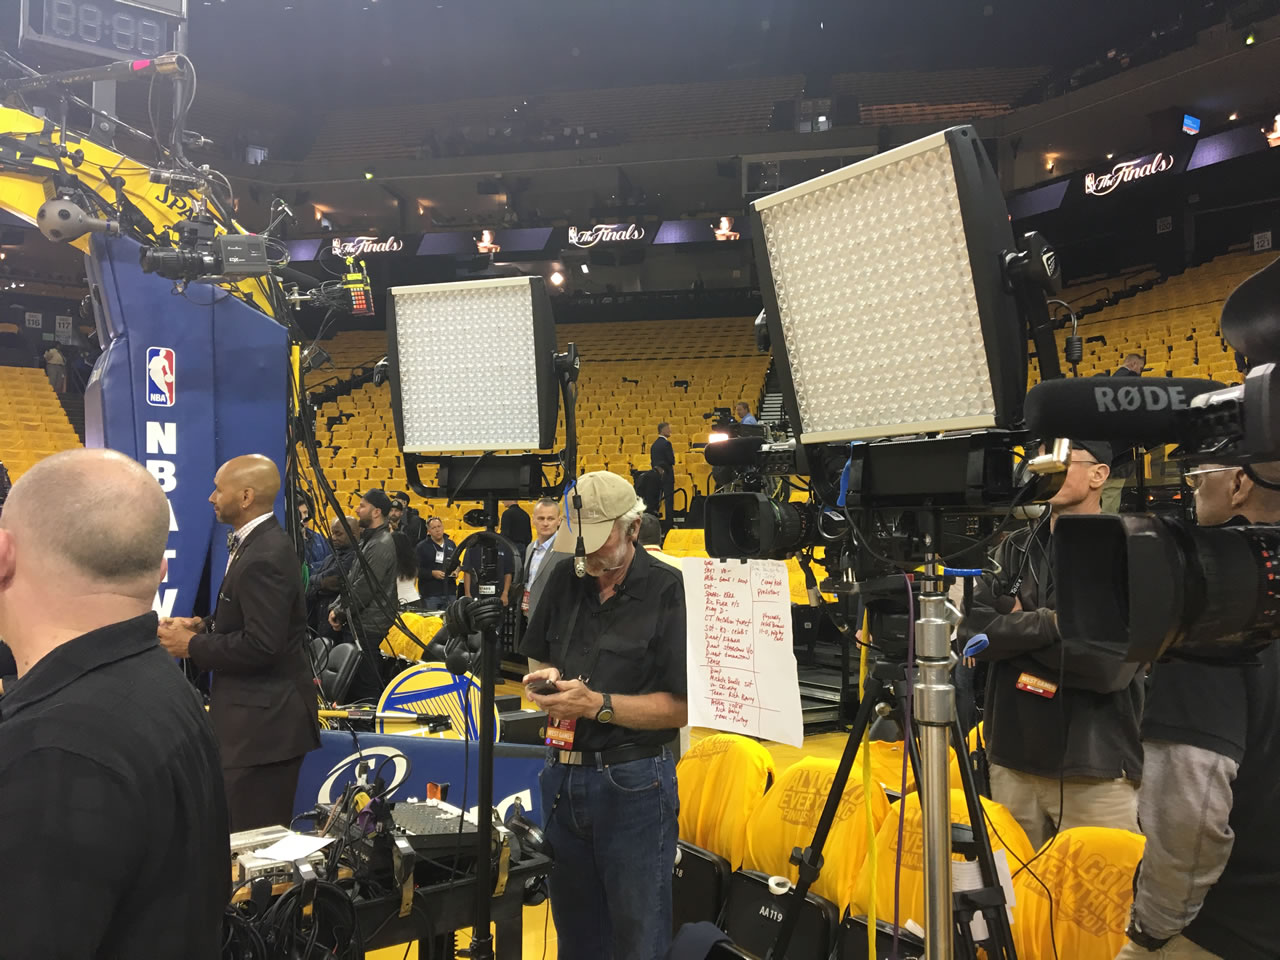 "<div class=""meta image-caption""><div class=""origin-logo origin-image none""><span>none</span></div><span class=""caption-text"">The ""After the Game"" crew sets up after game 2 of the NBA Finals in Oakland, Calif. on Sunday, June 4, 2017. (KGO-TV)</span></div>"